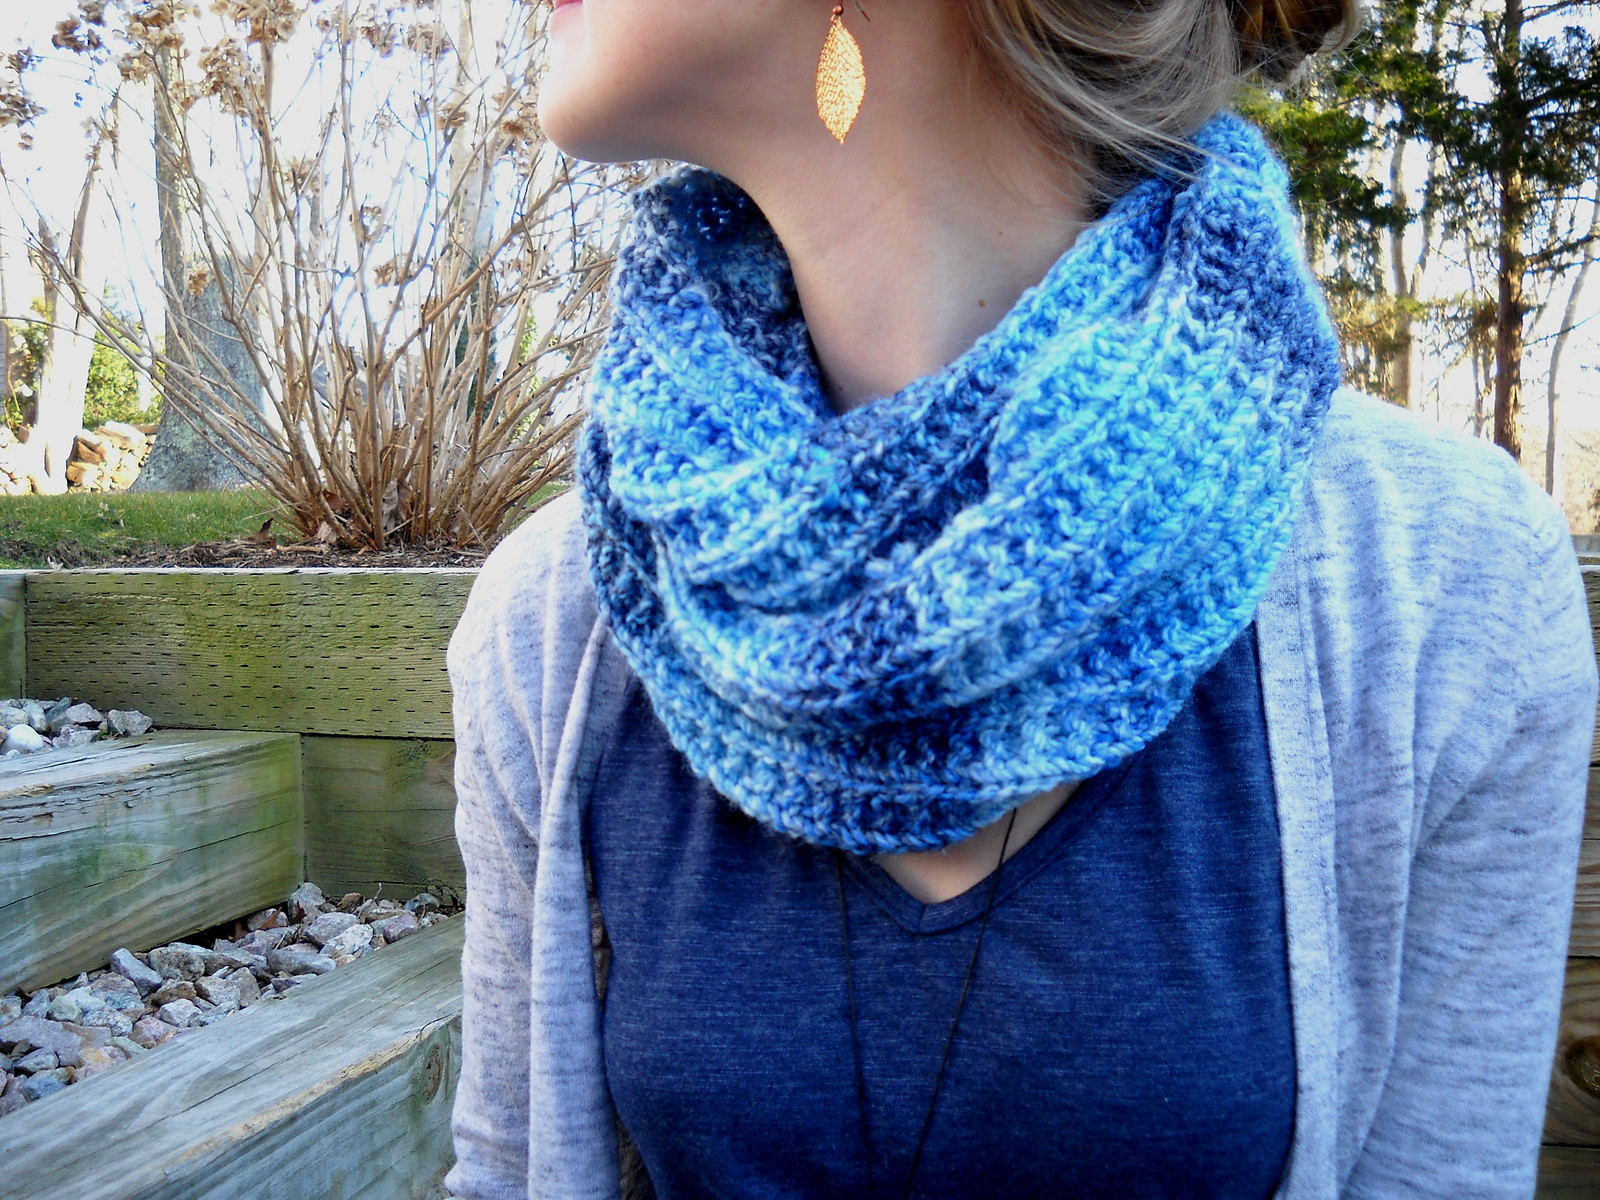 Knit Infinity Scarf Inspirational Infinity Scarf Knitted Best Instant Download Knitting Of Wonderful 49 Photos Knit Infinity Scarf